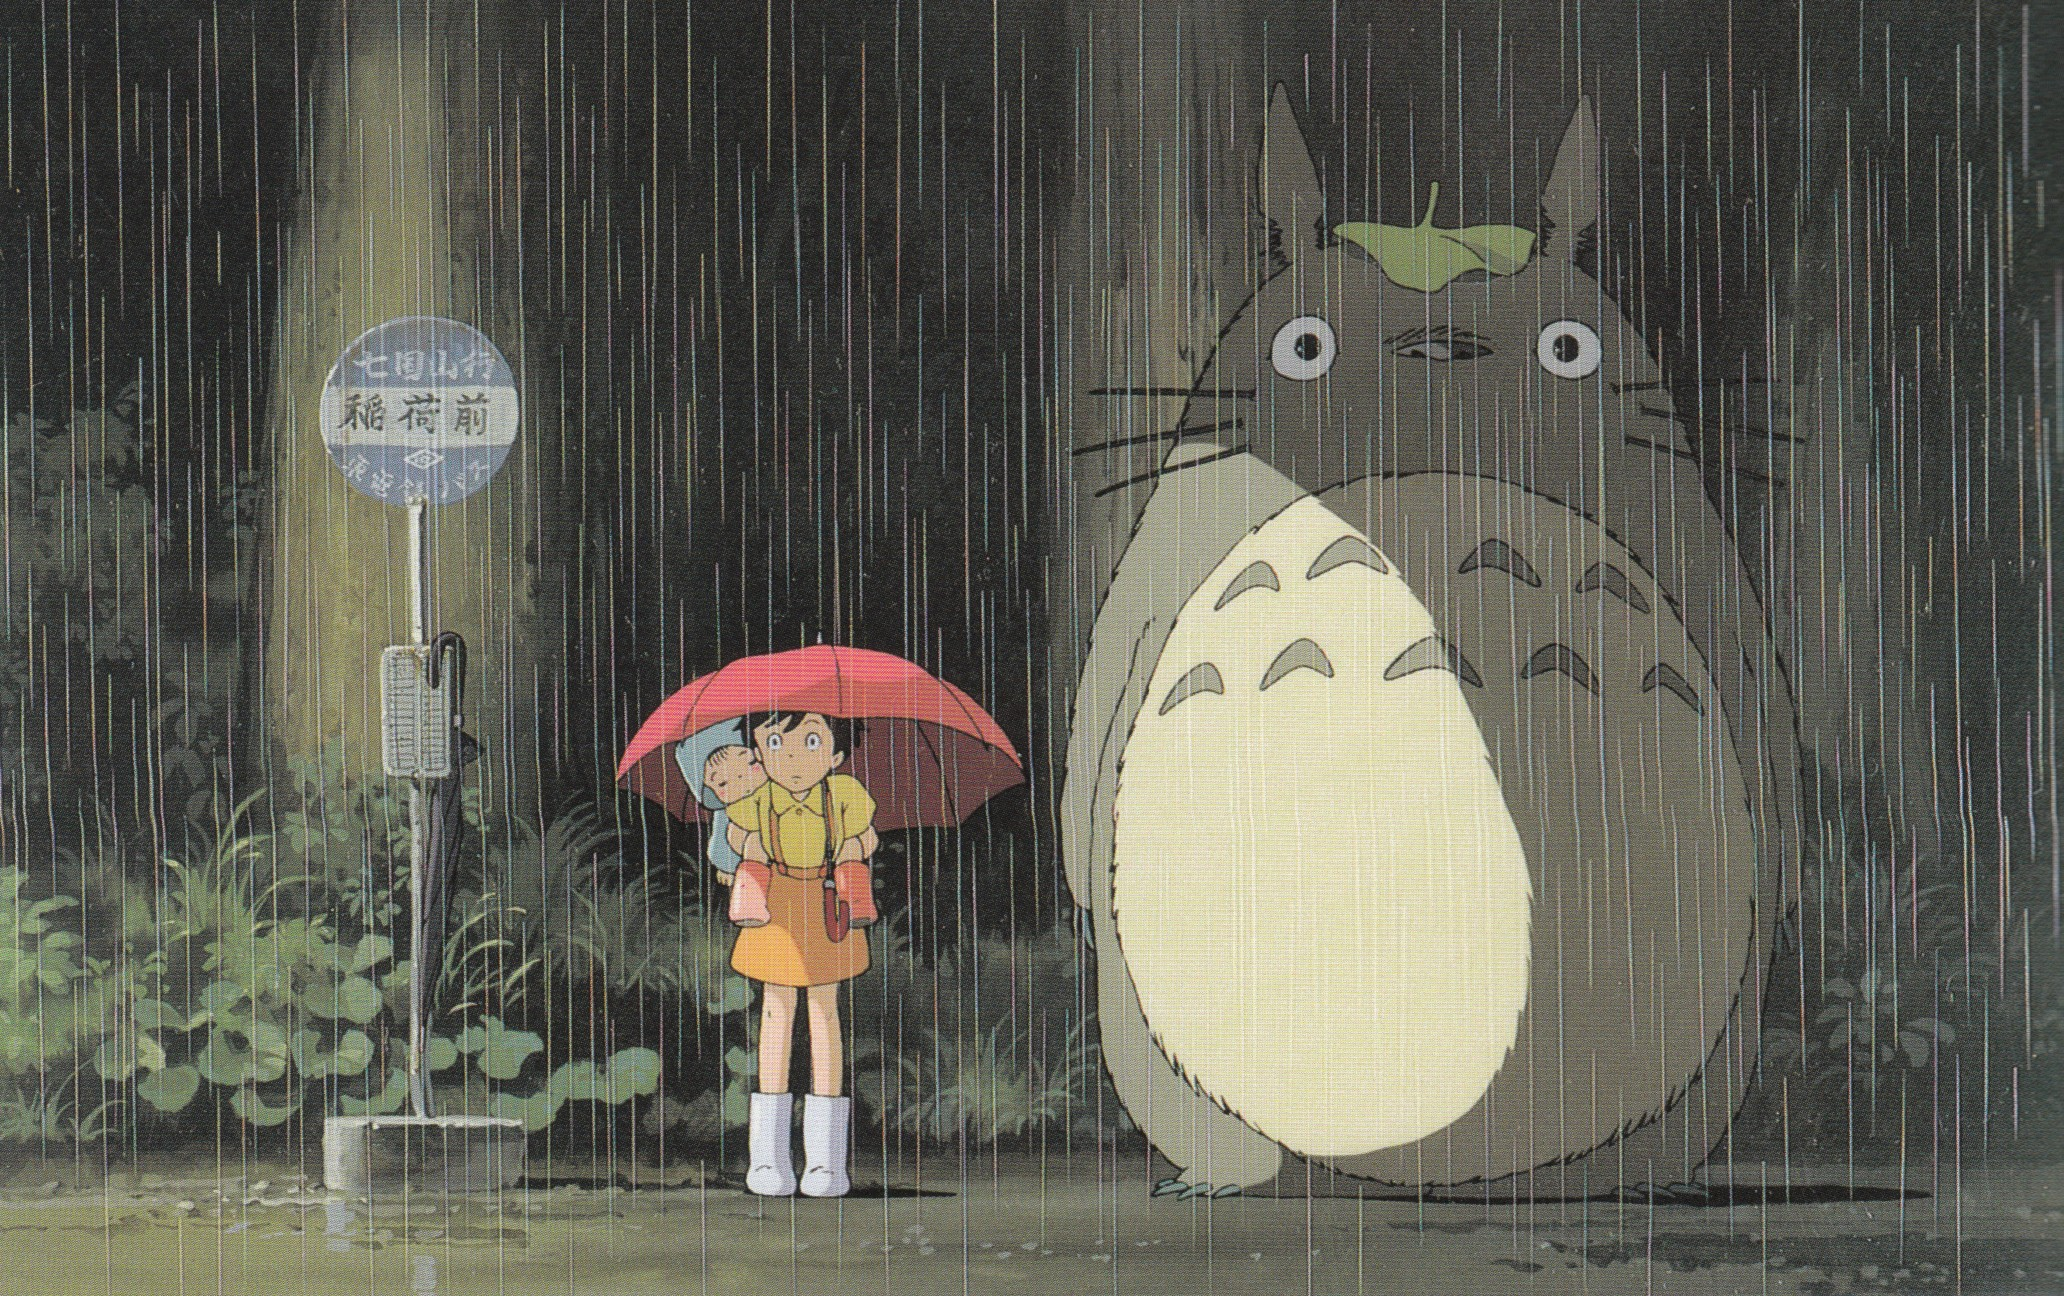 The most iconic scene from My Neighbor Totoro: a huge grey and white bear-like creature waits at a rainy bus stop with two children